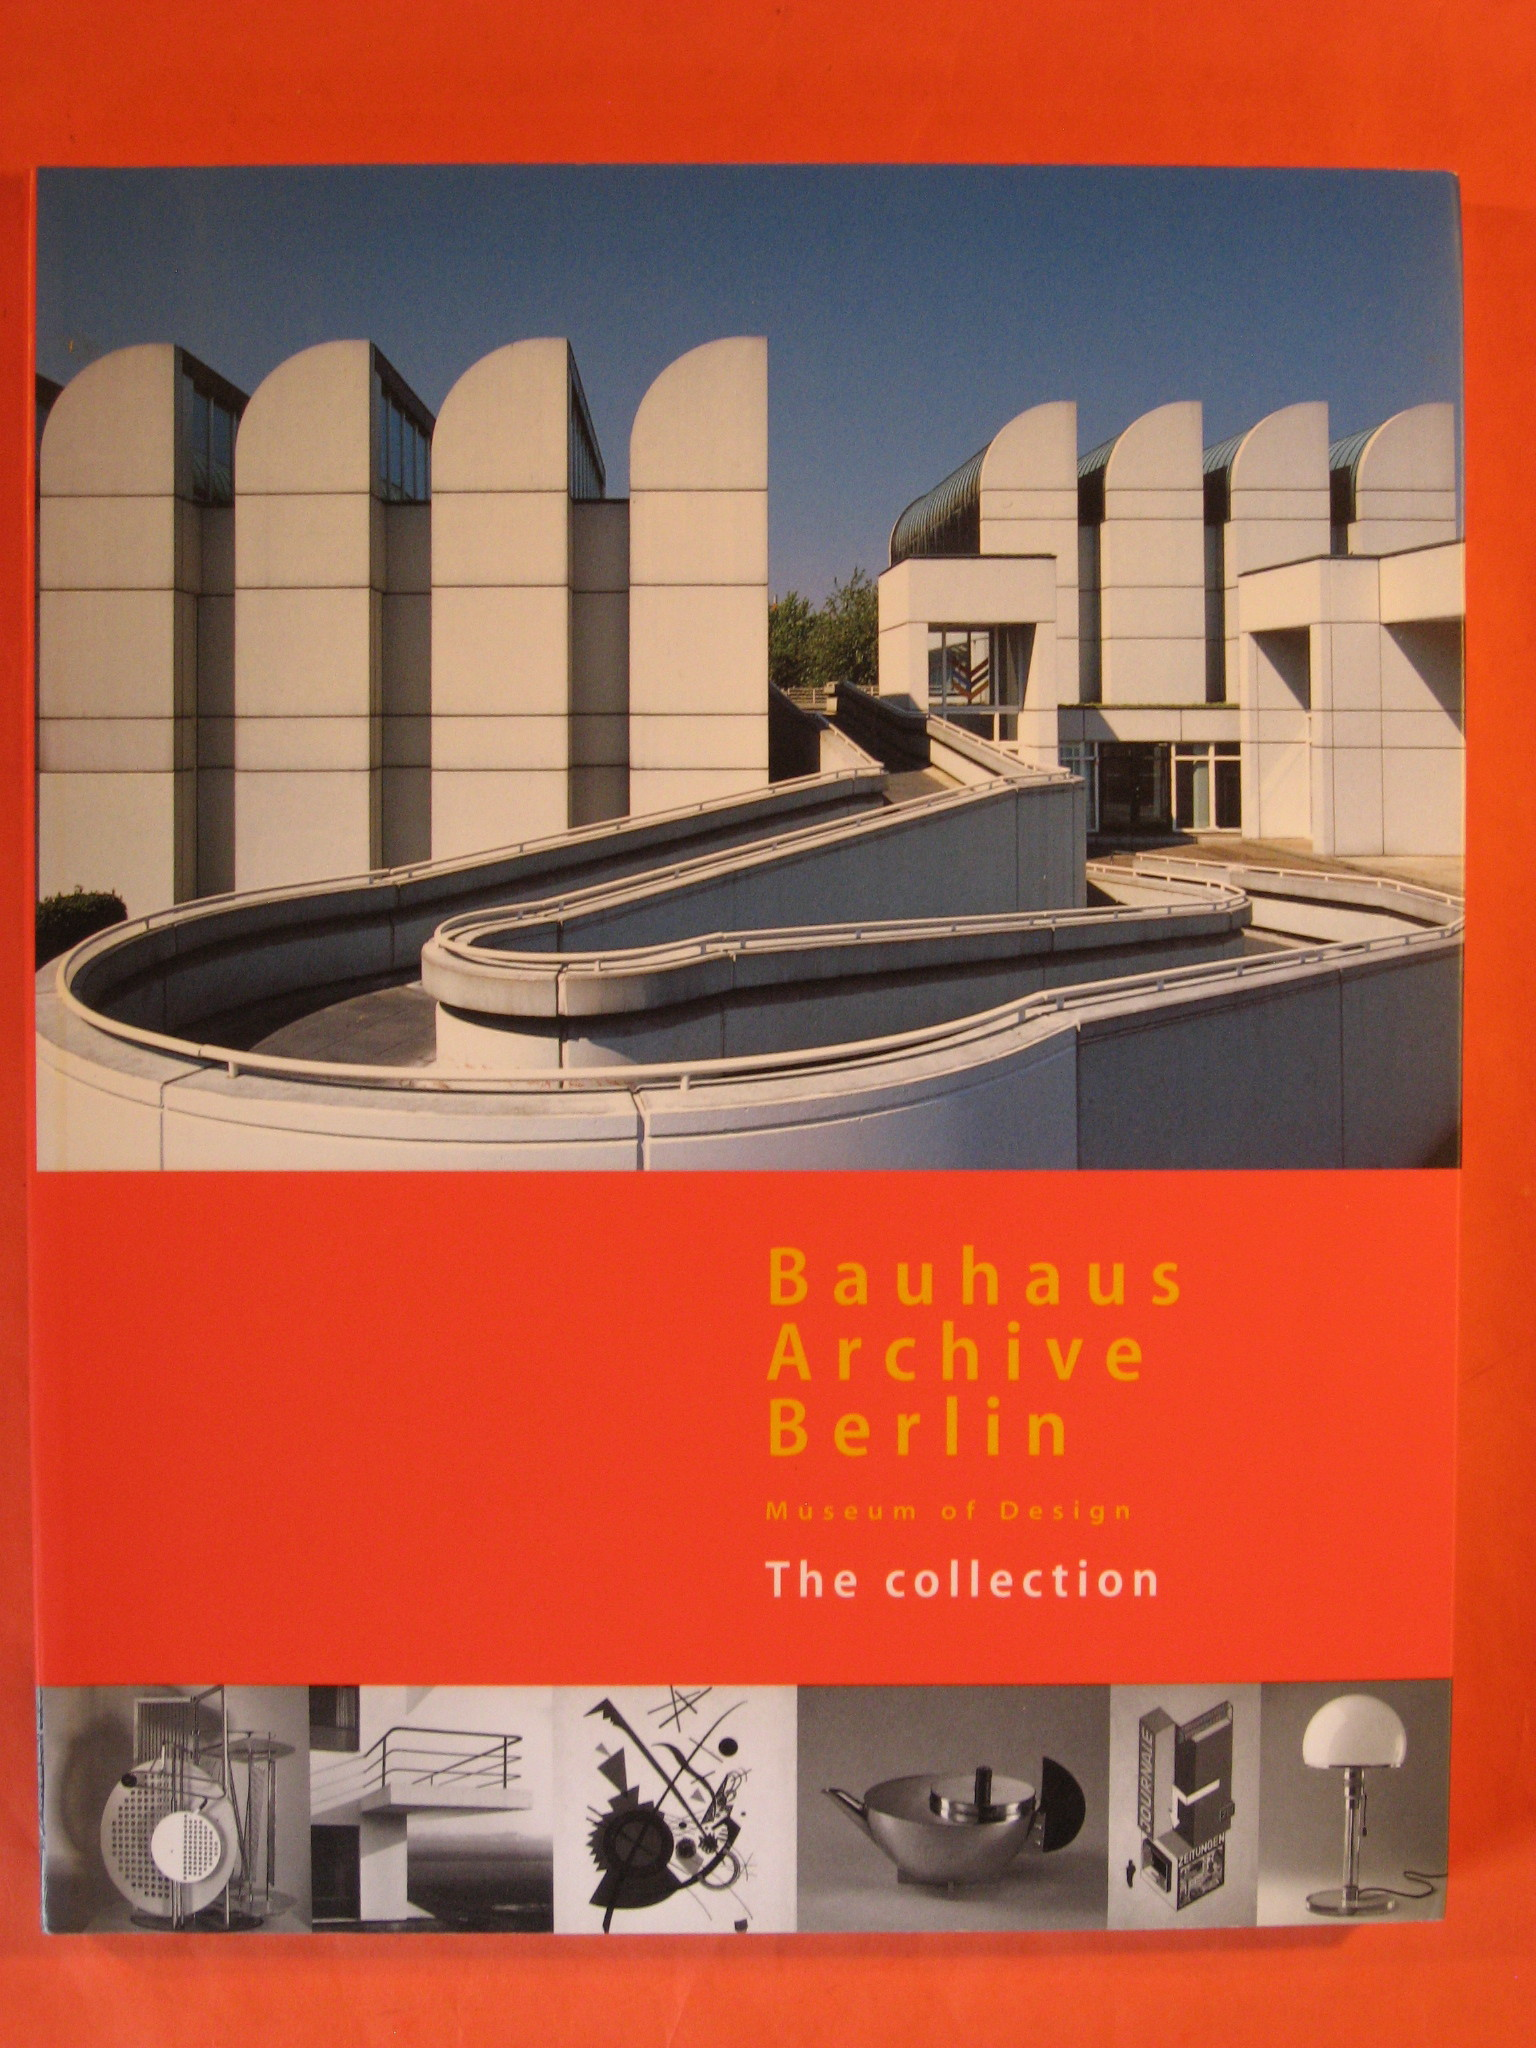 Bauhaus Archive Berlin: Museum of design, the collection, Droste, Magdalena;Moortgat, Elisabeth;Carpenter, Richard;Scrima, Andrea